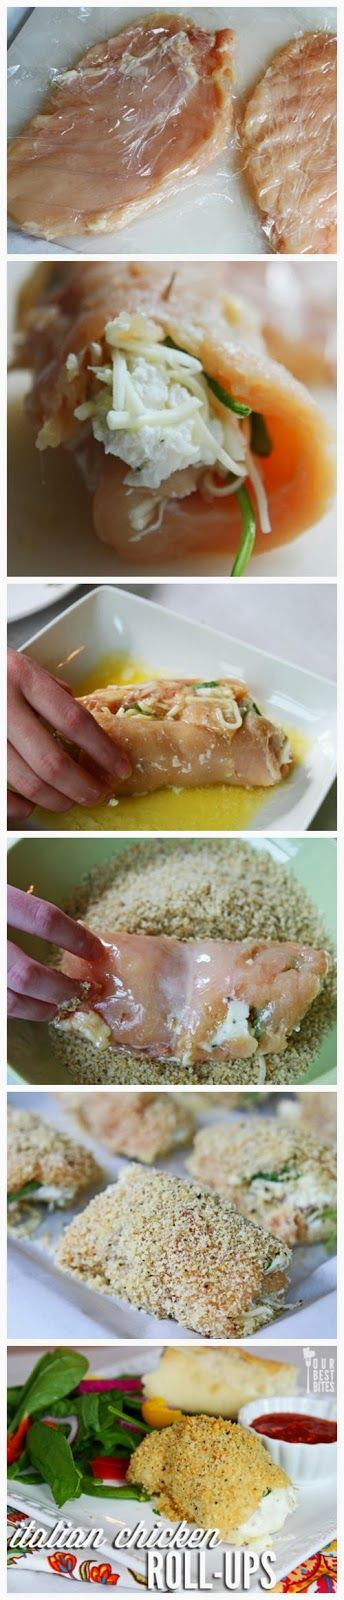 Italian Chicken Roll-Ups. These chicken roll-ups are quite simple to make, but give the appearance of something fancy.